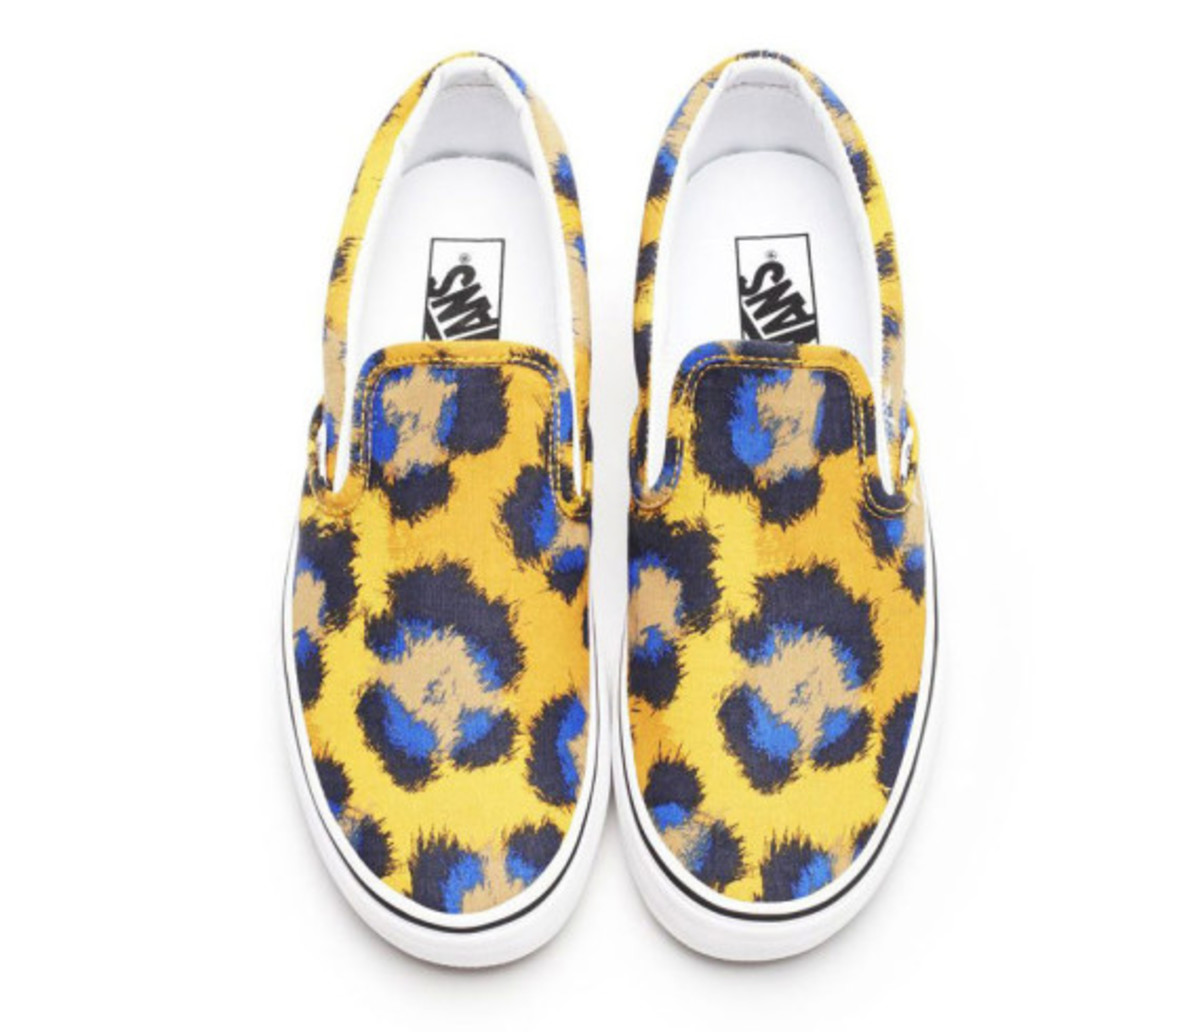 kenzo-vans-spring-summer-2013-capsule-collection-06